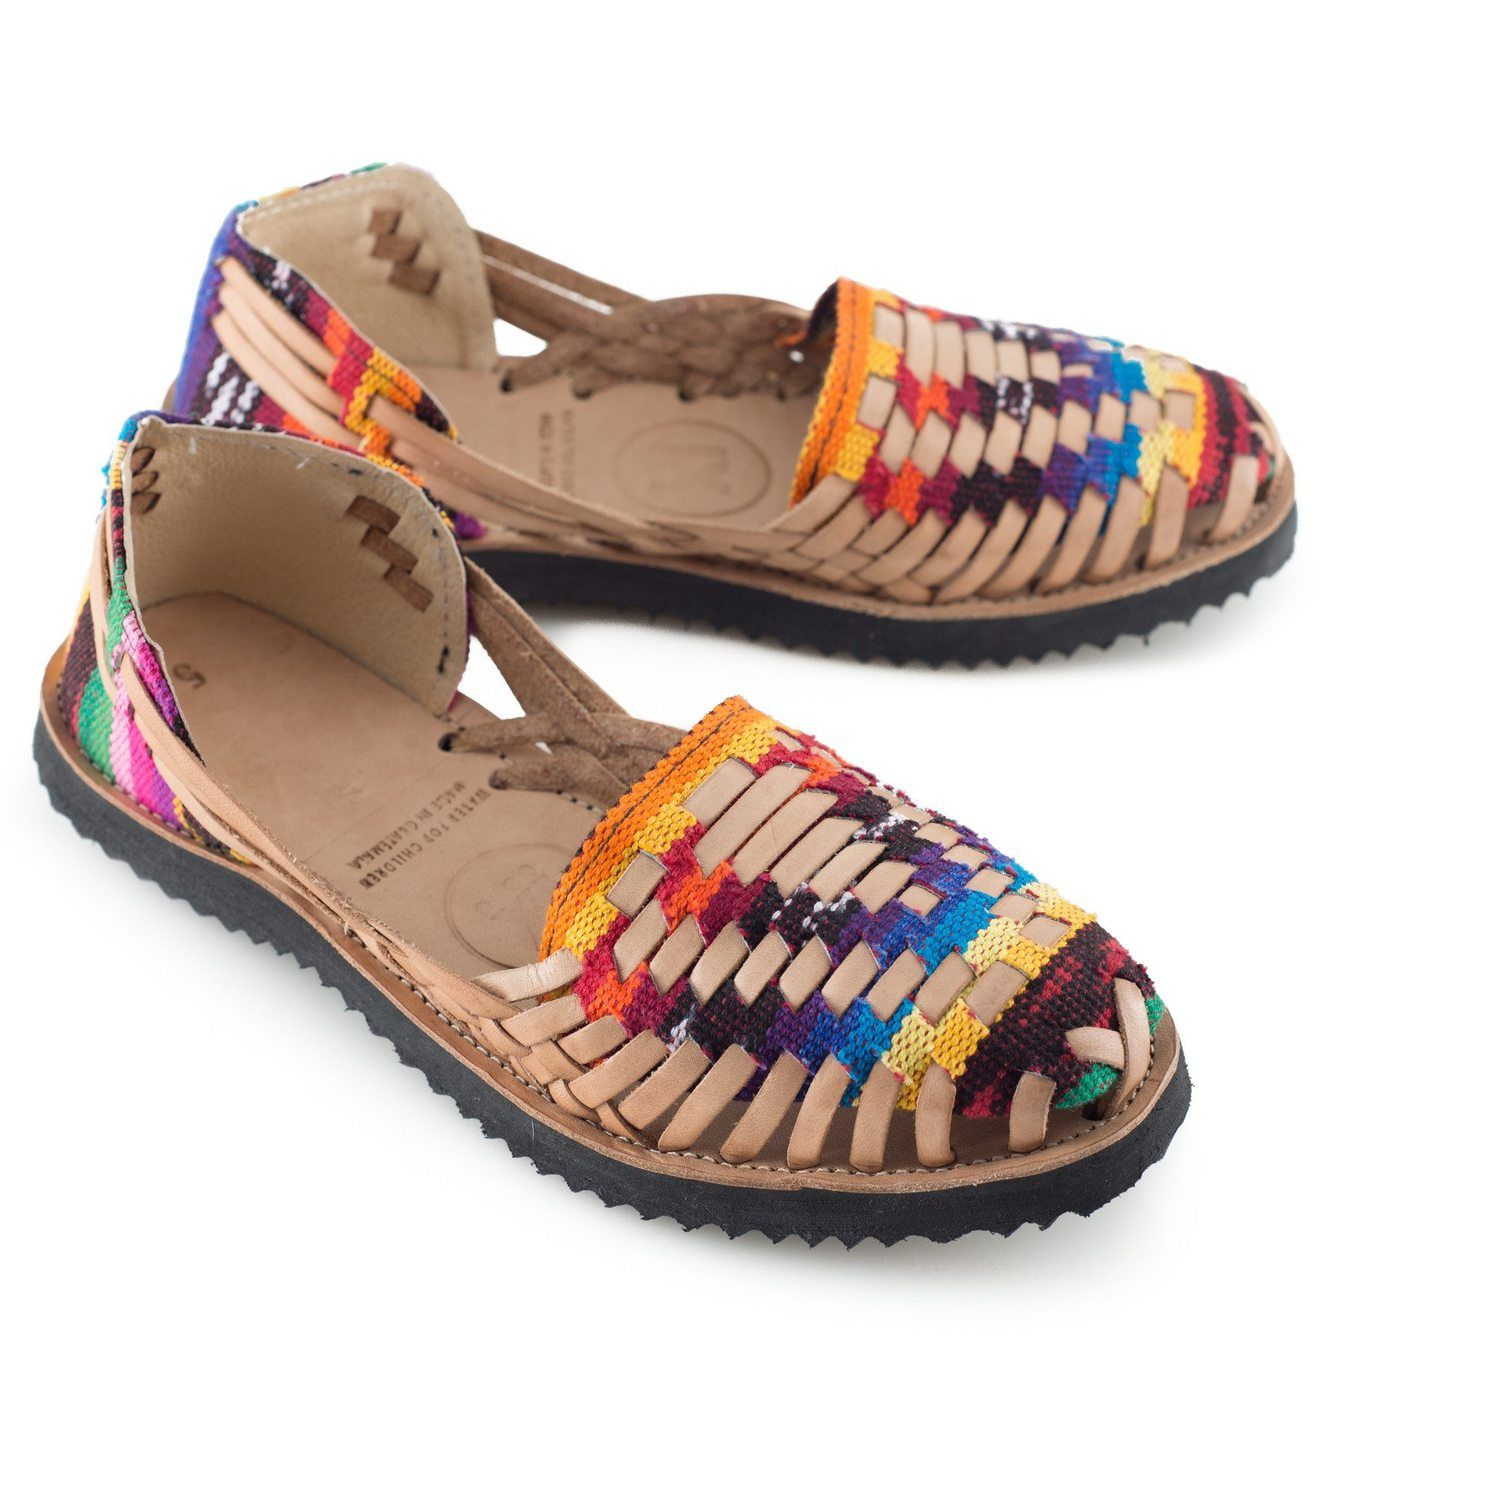 66c33367220c Women s Traditional Mayan Woven Leather Huarache Sandals - Ix Style - Water  For Children